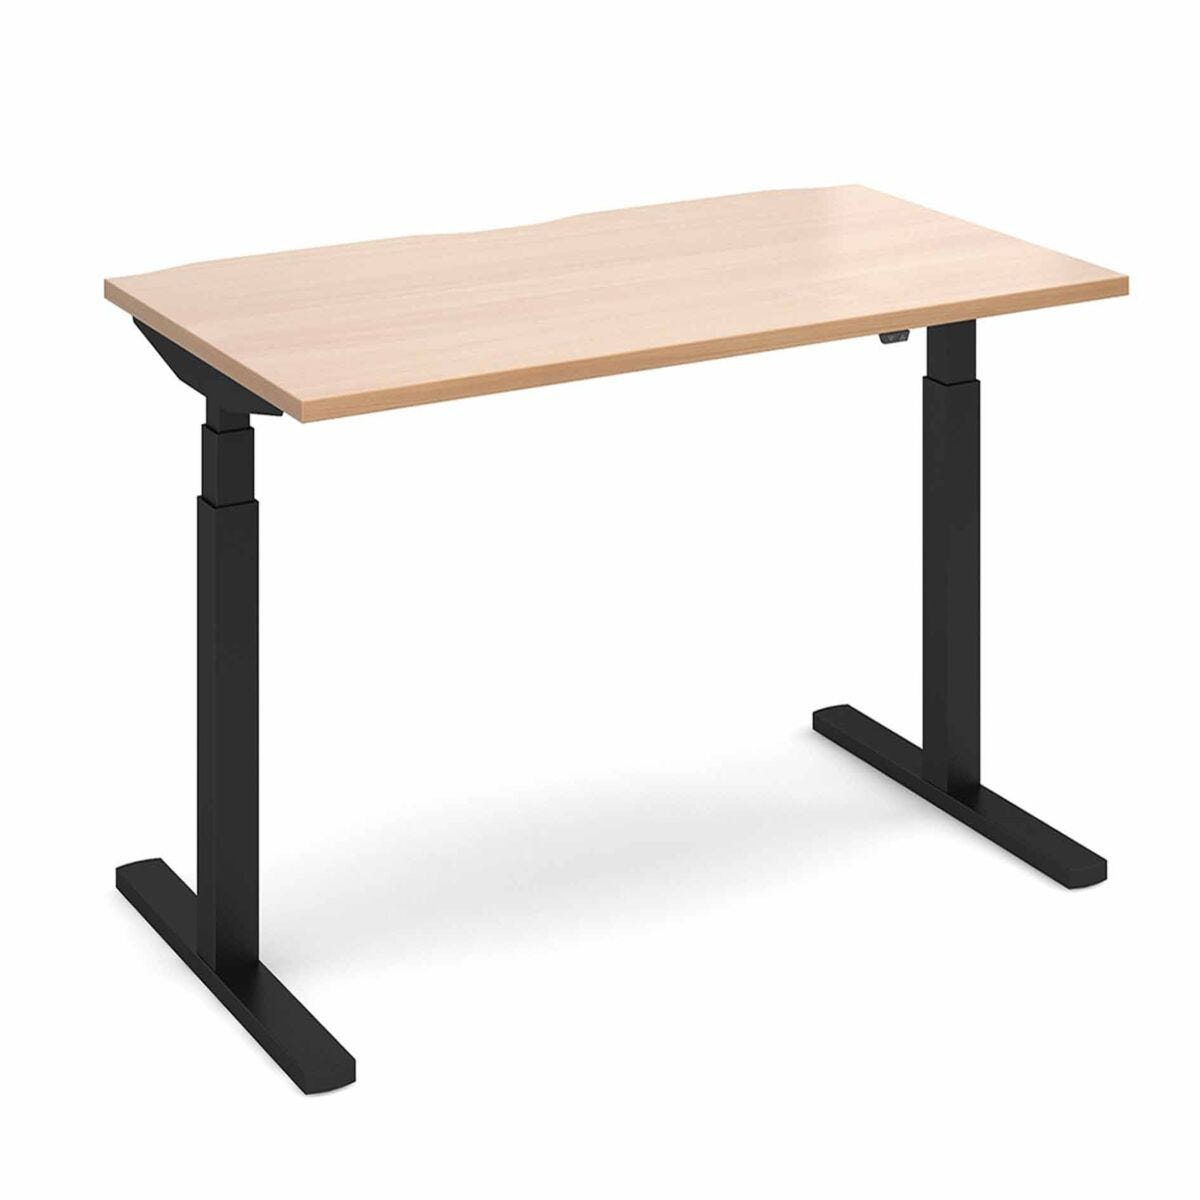 Elev8 Touch Straight Sit-Stand Desk 1400mm x 800mm Black Frame